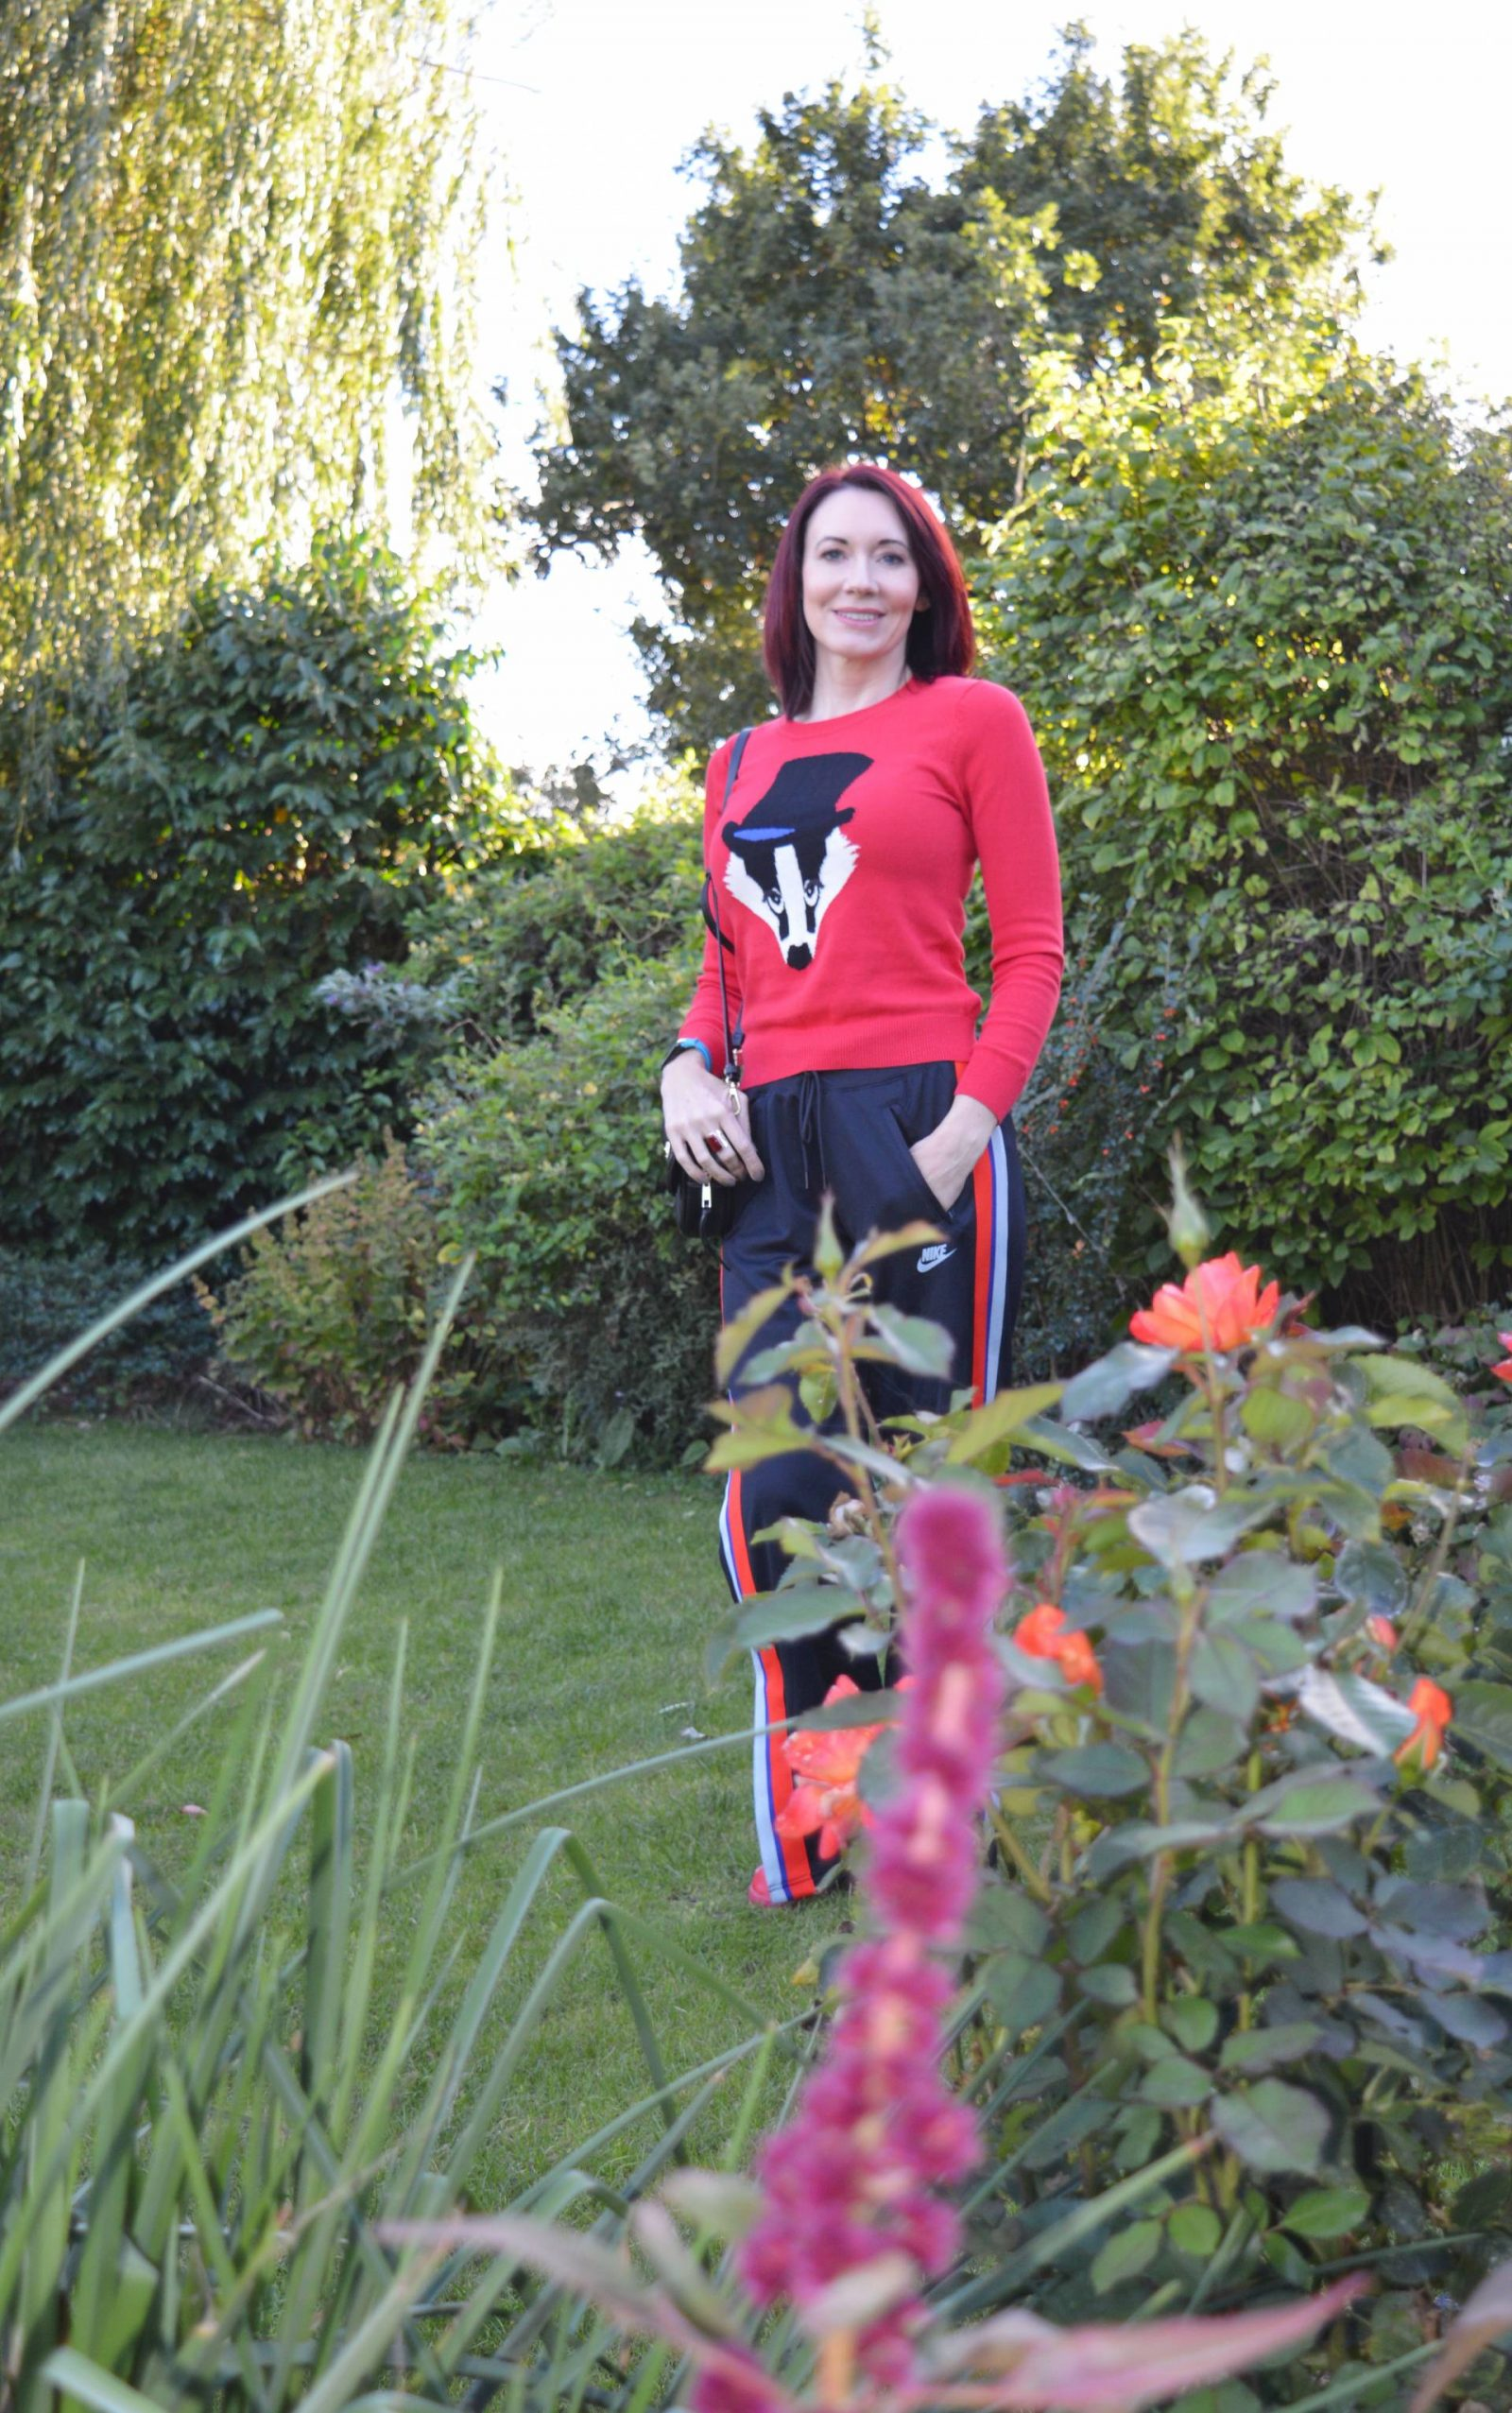 Dressing for comfort in athleisure, badger jumper